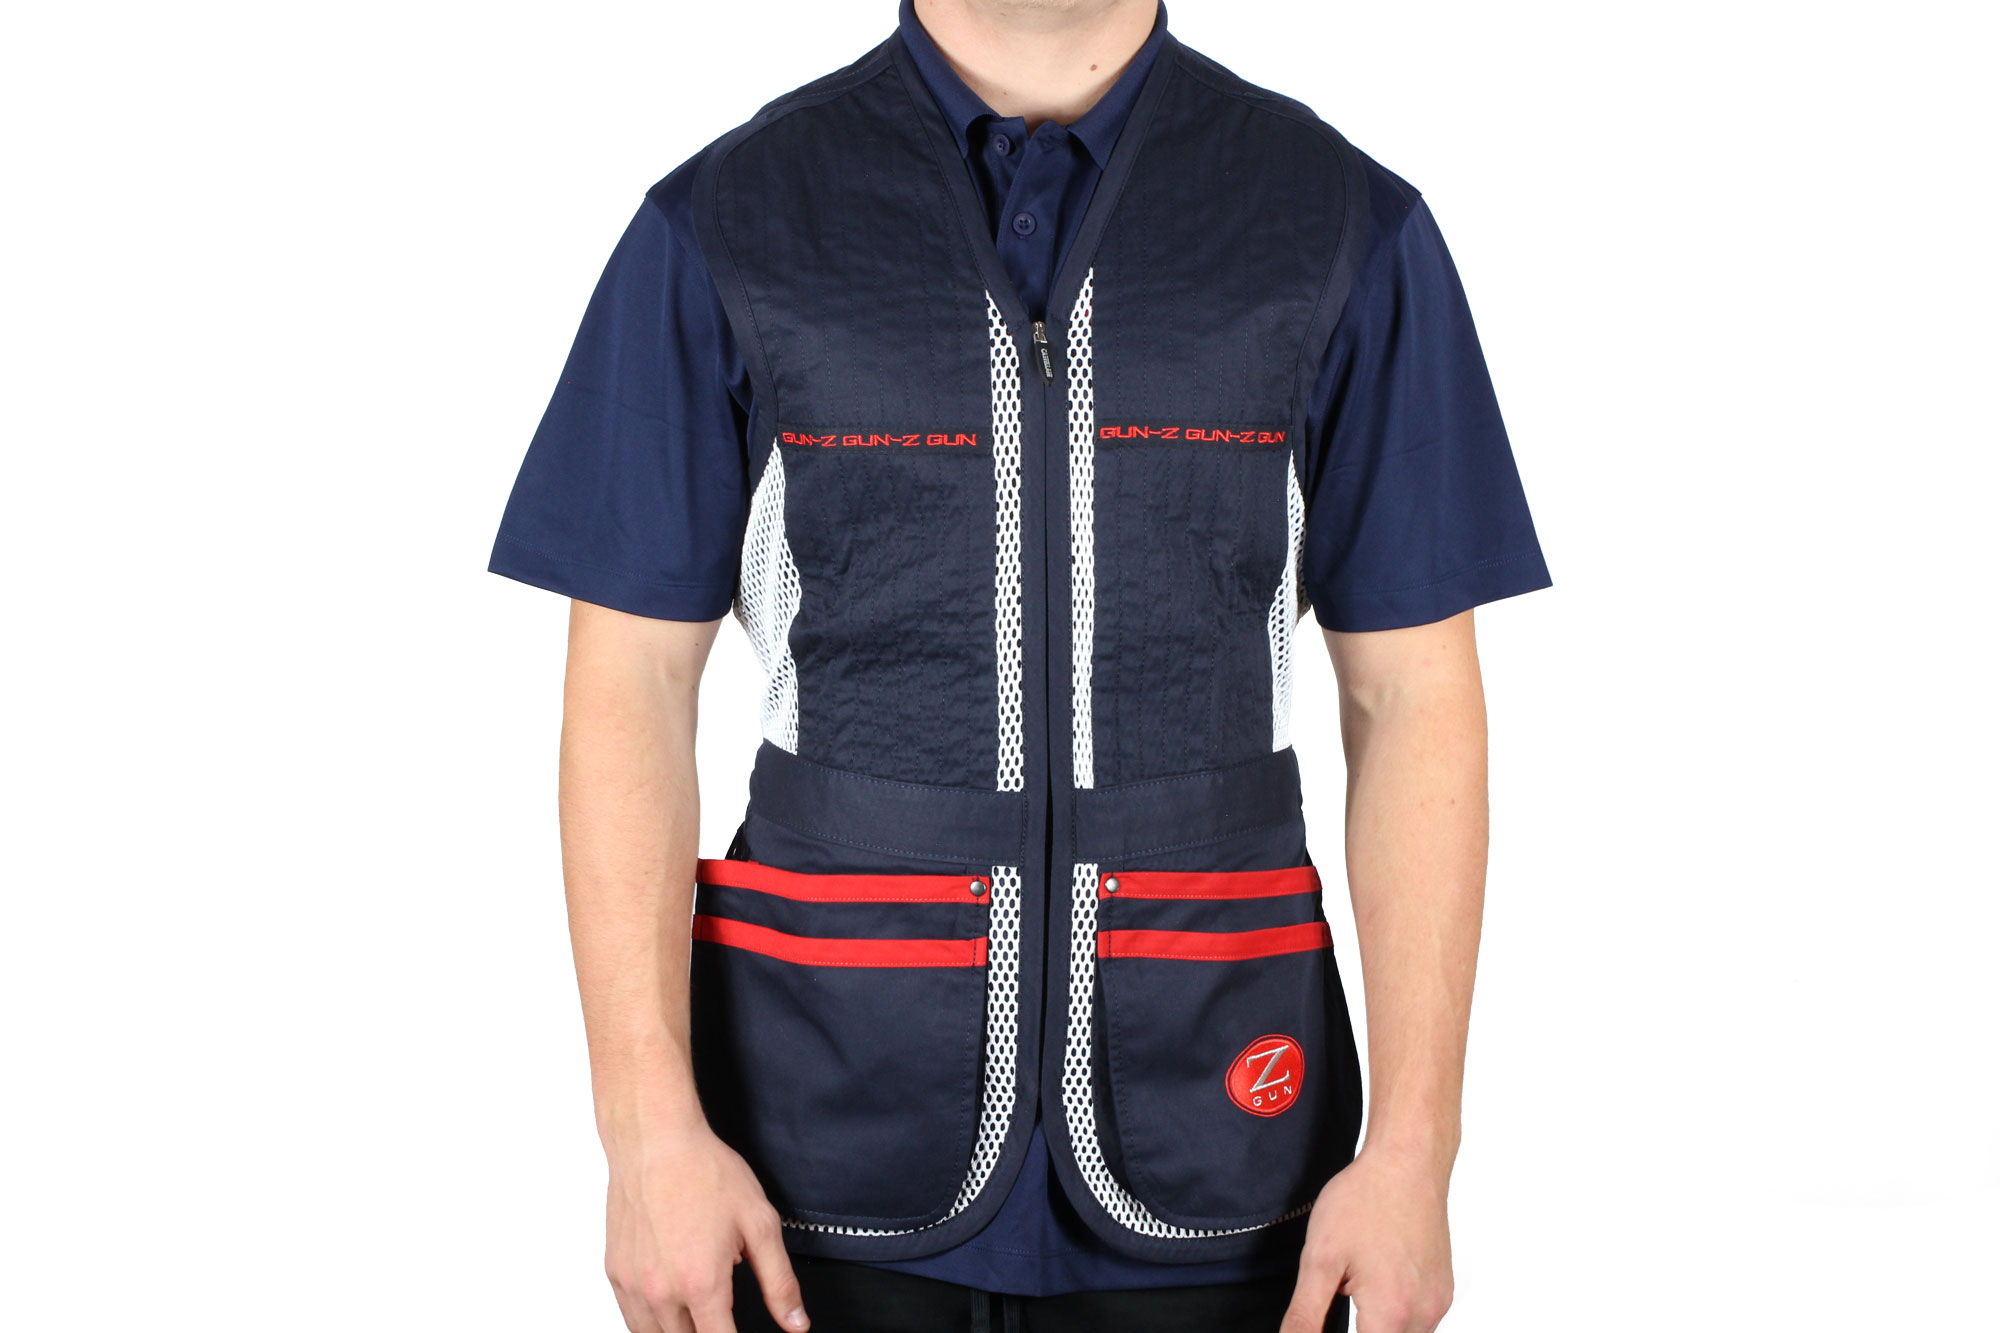 Zoli Shooter Vest by Castellani front